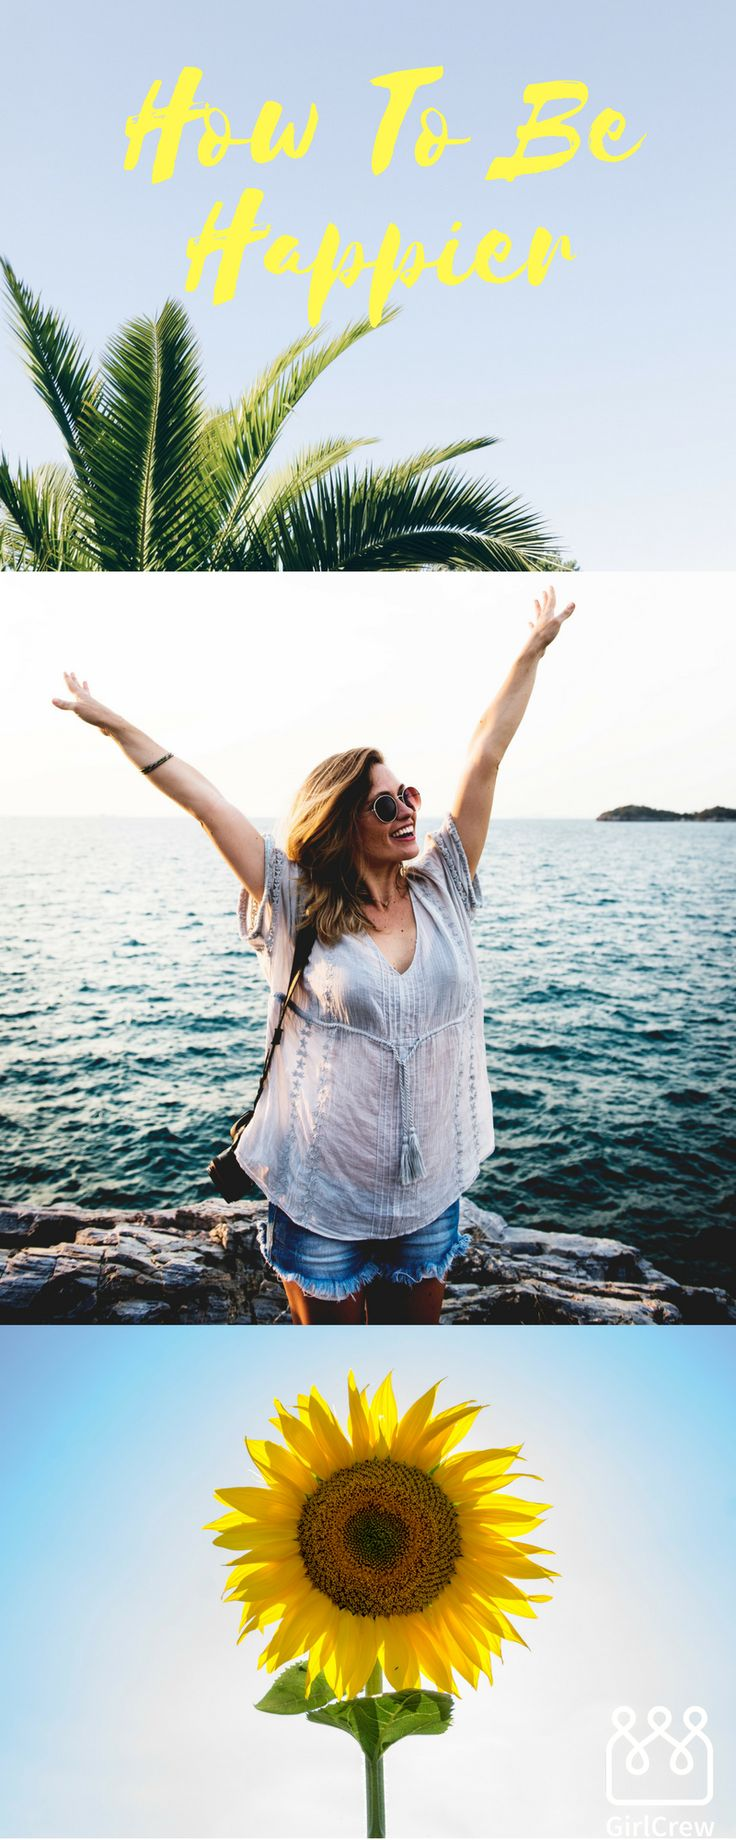 Do you struggle with finding moments of joy in your life? Are you so stressed that you can't remember the last time you felt happy? If finding happiness is a stumbling block for you, why not try some of these suggestions and put a smile on your face.